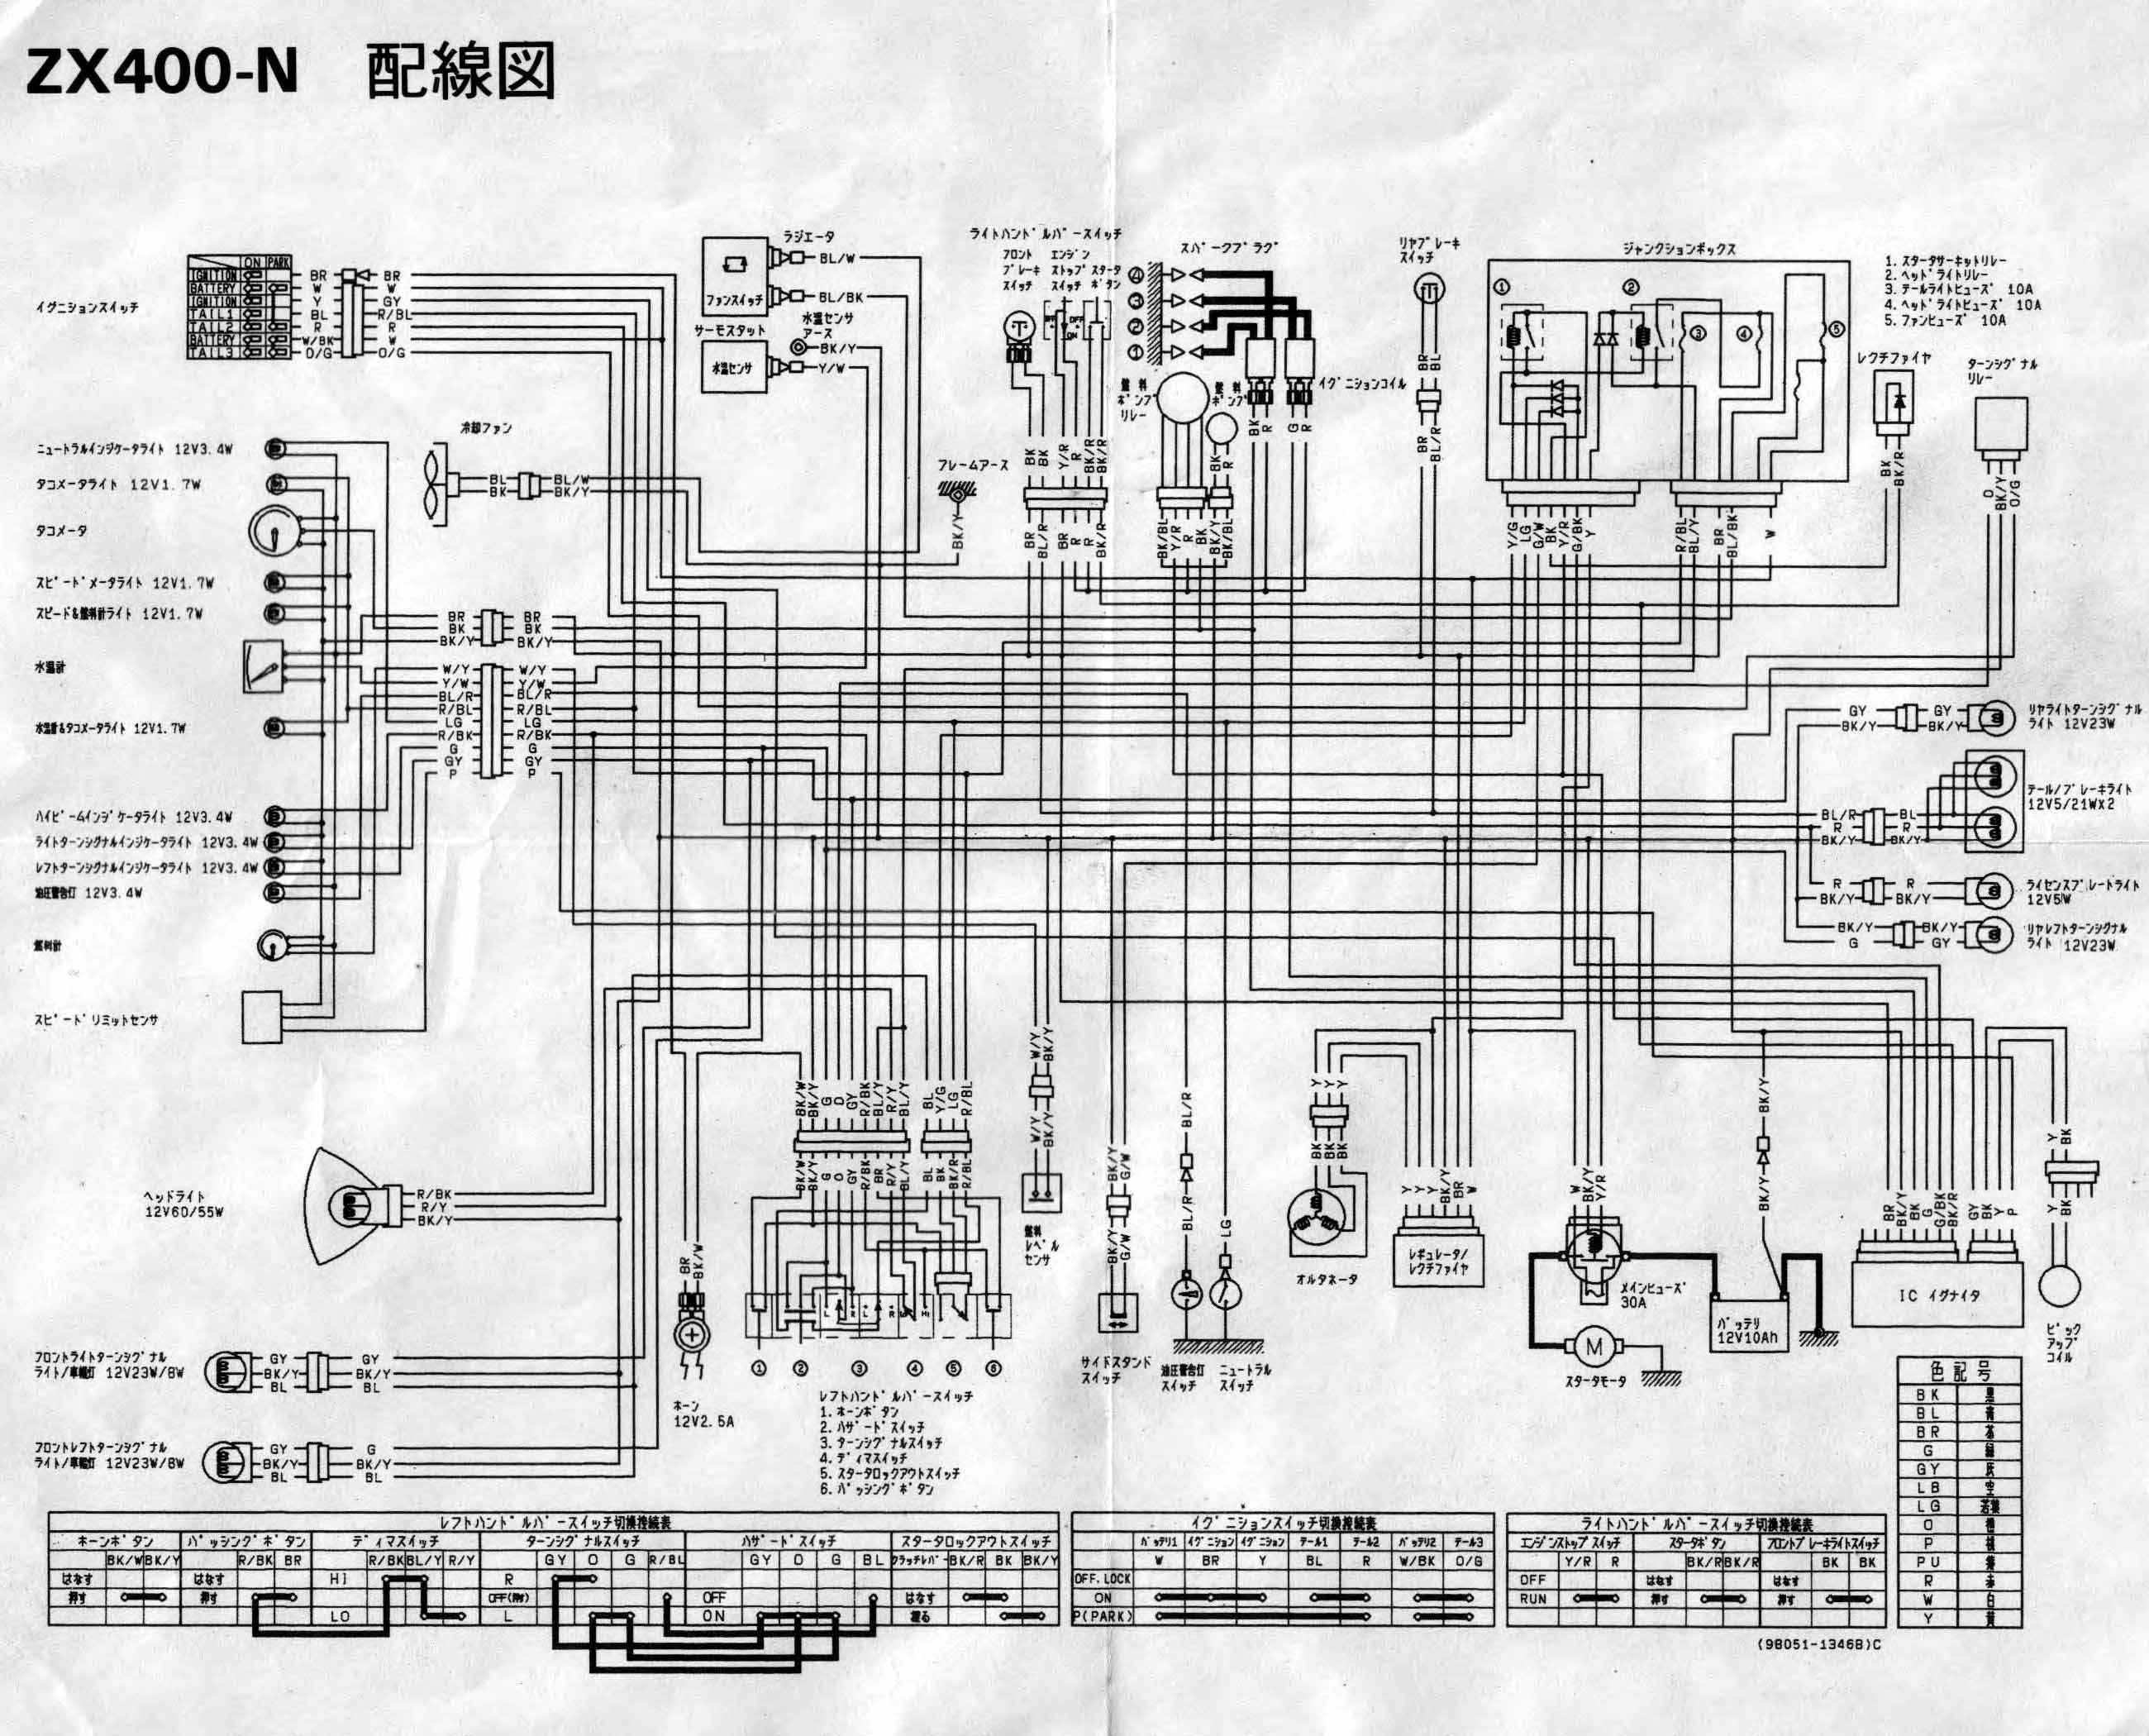 2006 Kawasaki 360 Wiring Diagram Schematic Diagrams 1987 Motorcycle Automotive U2022 Of Carburetors